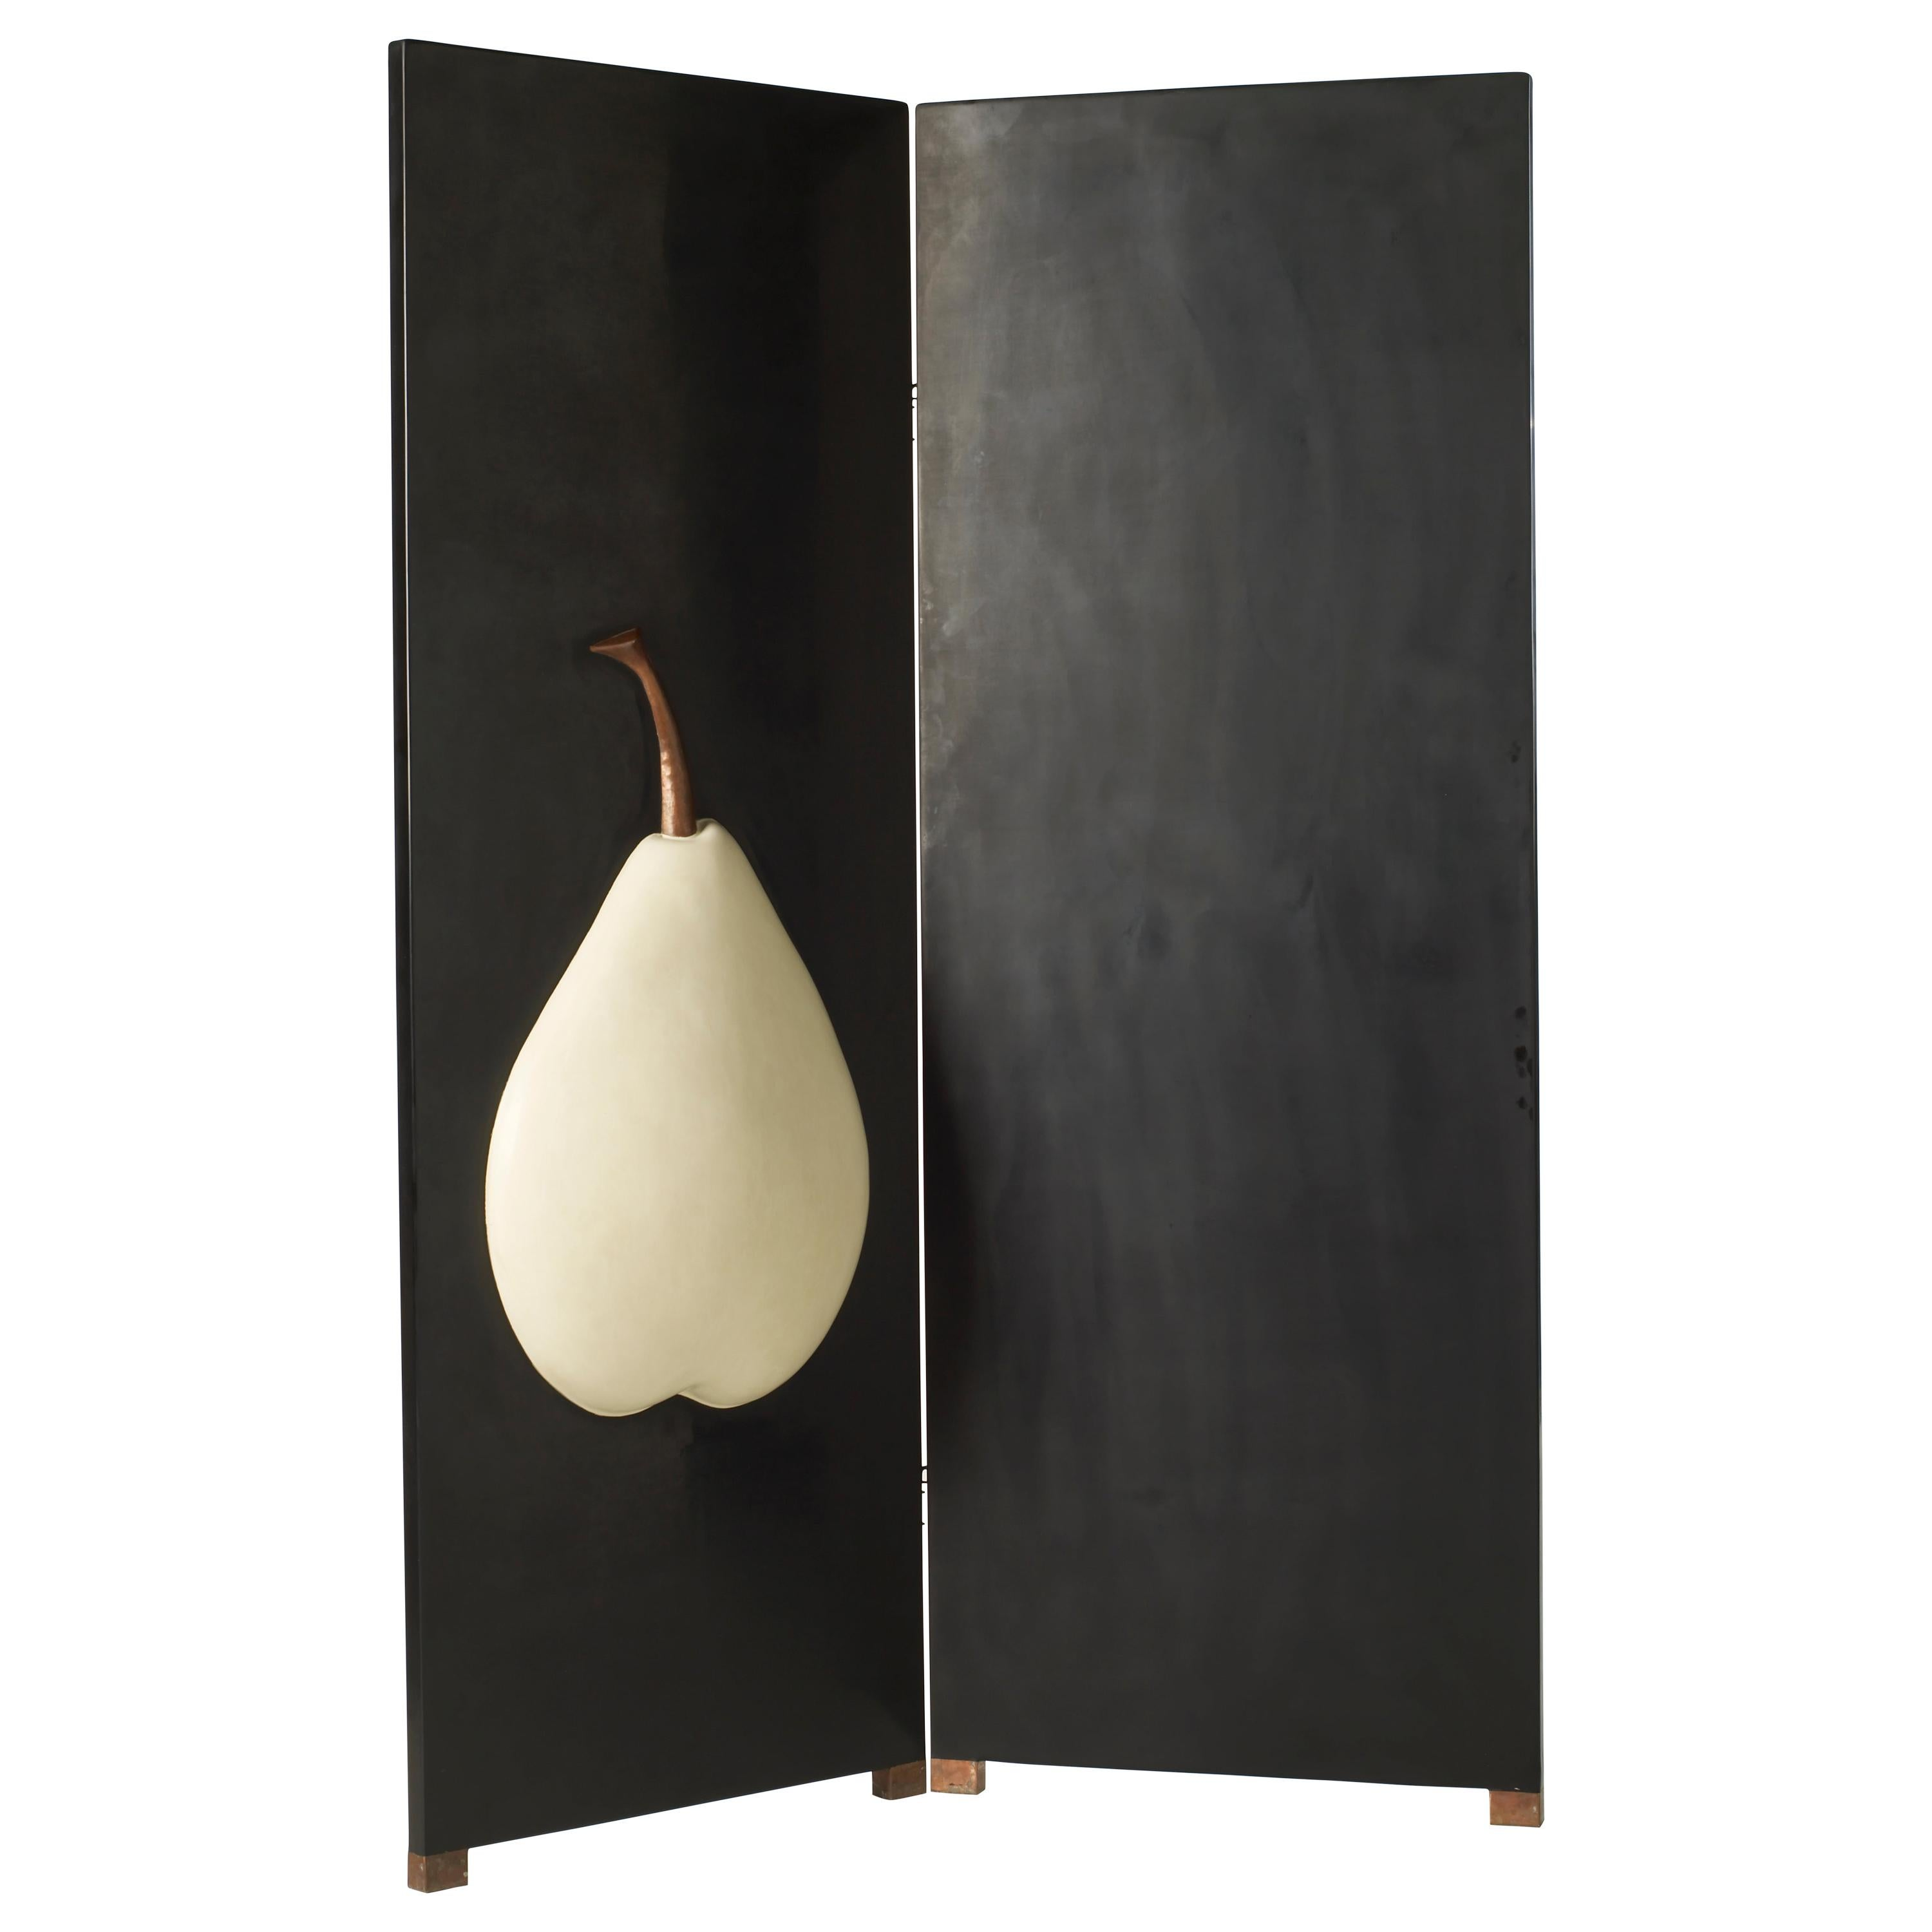 2-Panel Black Lacquer Screen with Cream Pear by Robert Kuo, Handmade, Limited